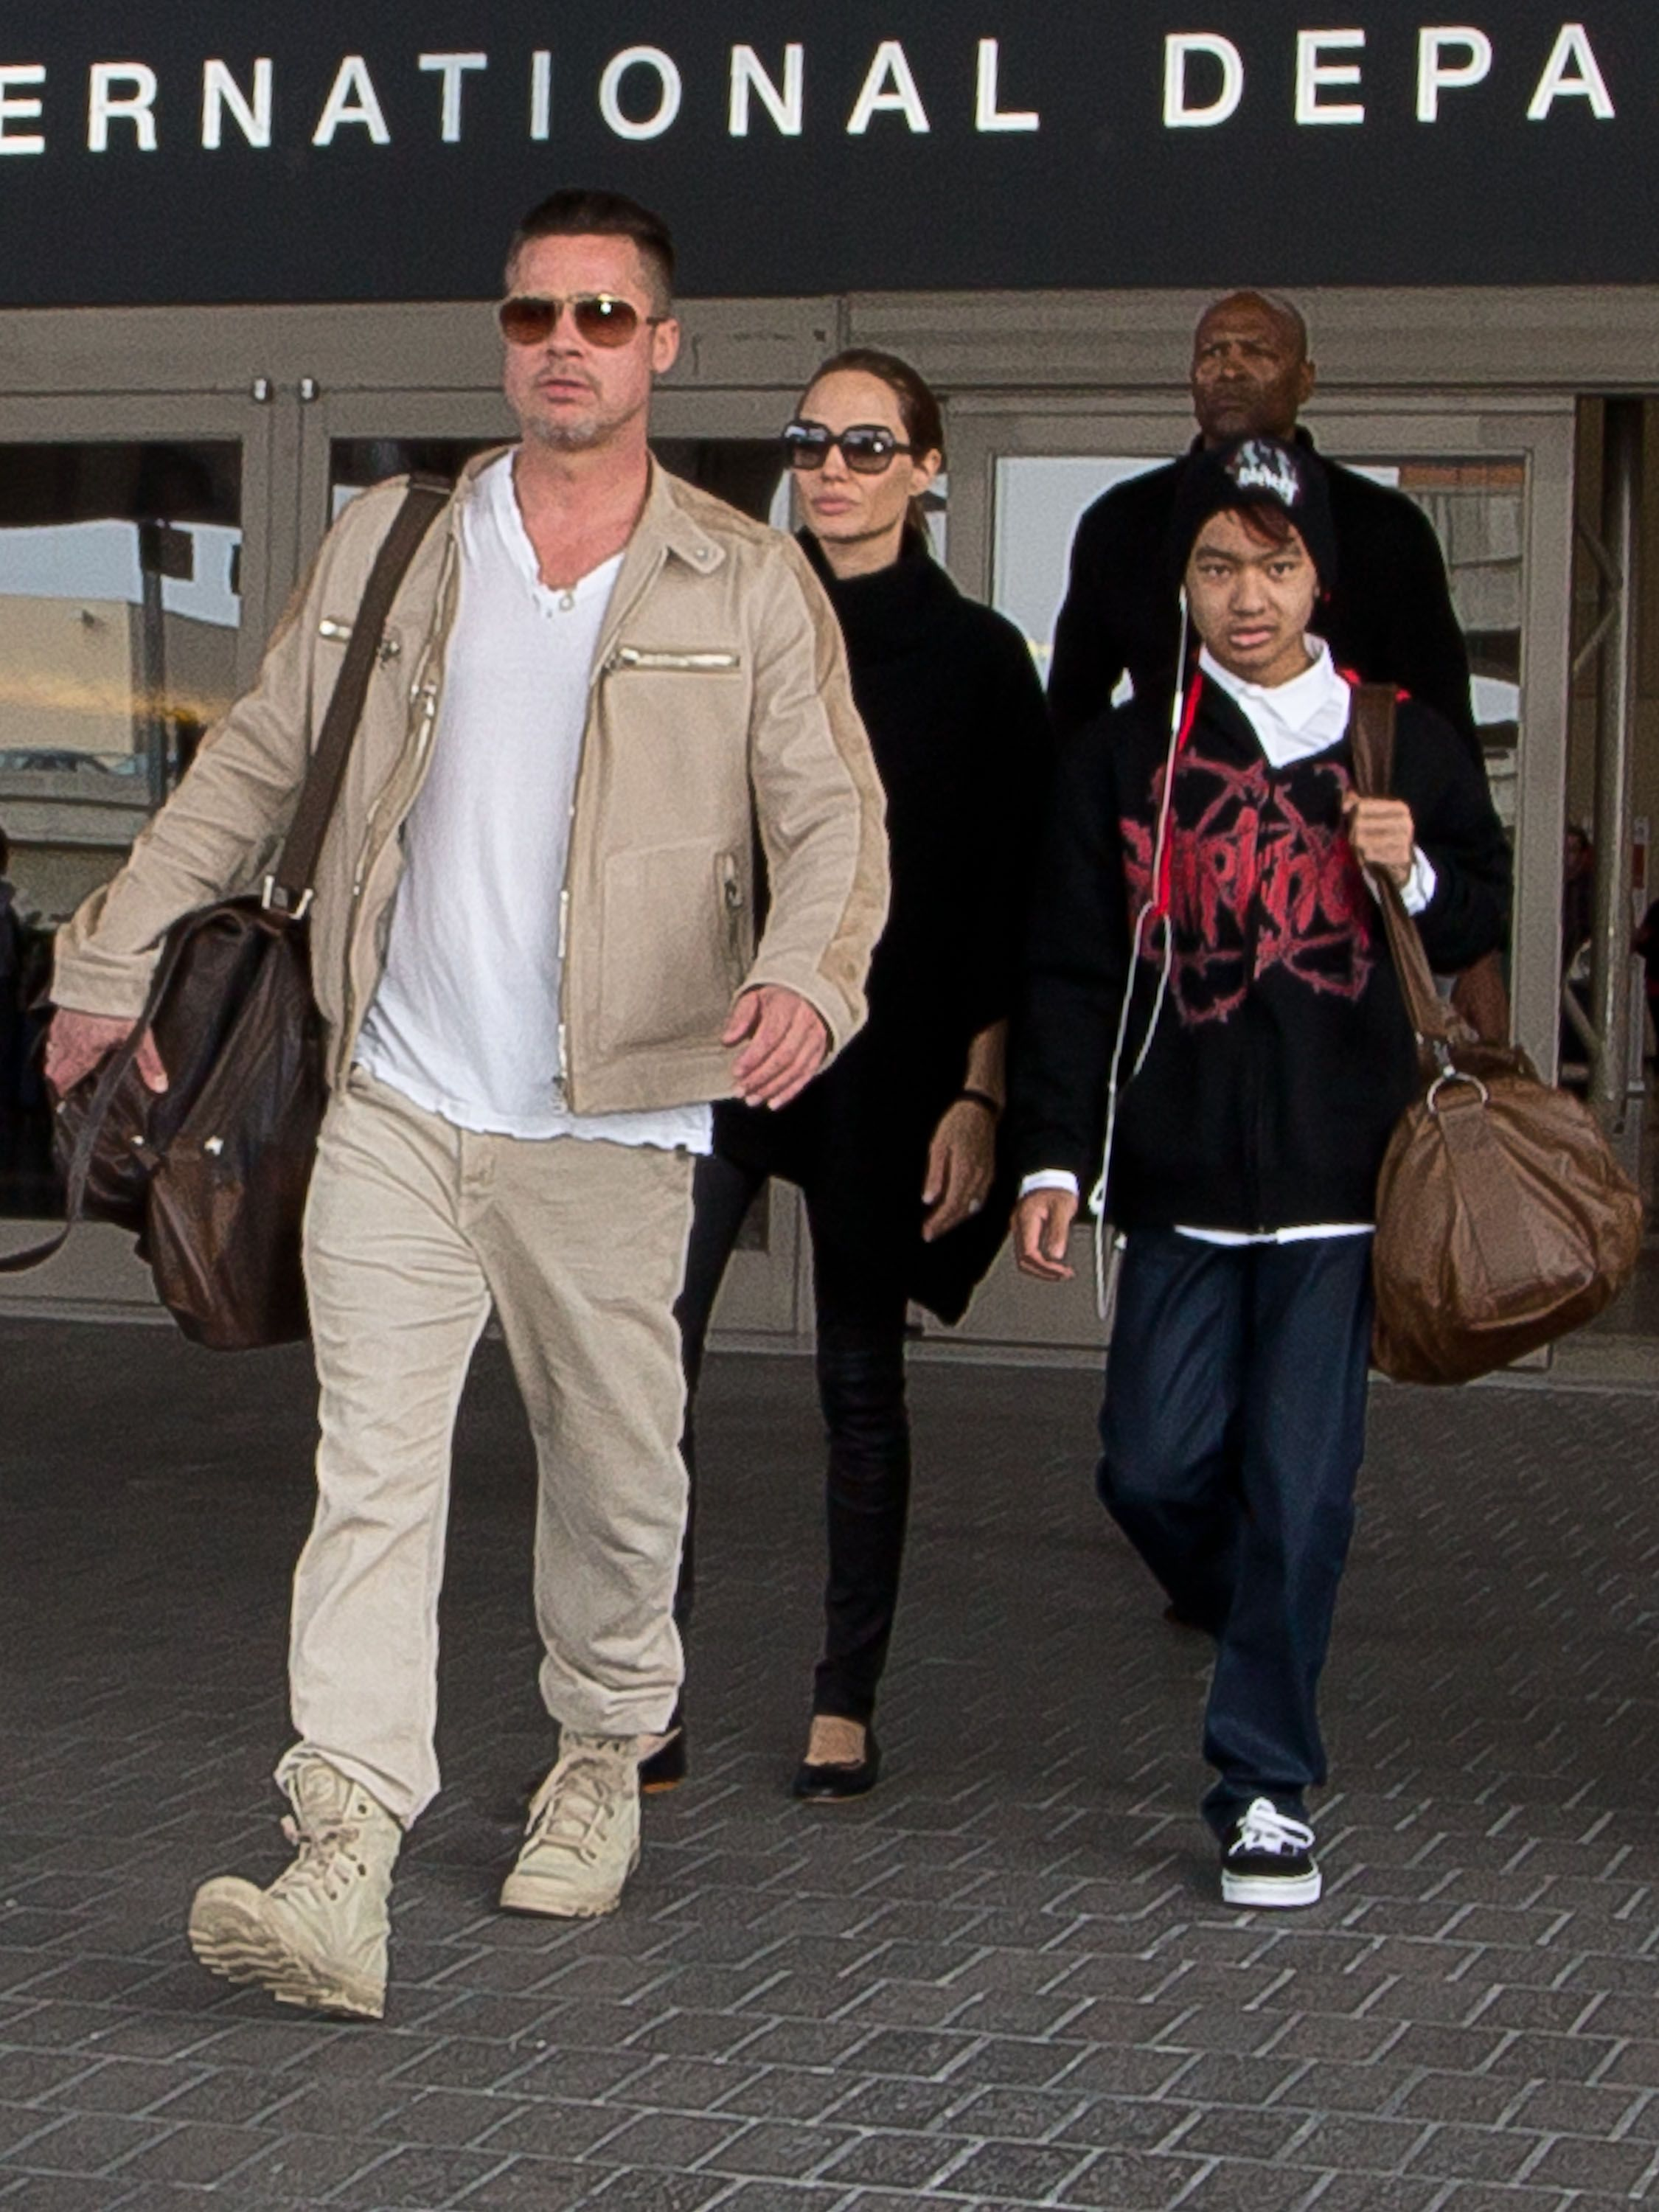 Brad Pitt, Angelina Jolie and their oldest son Maddox / Getty Images